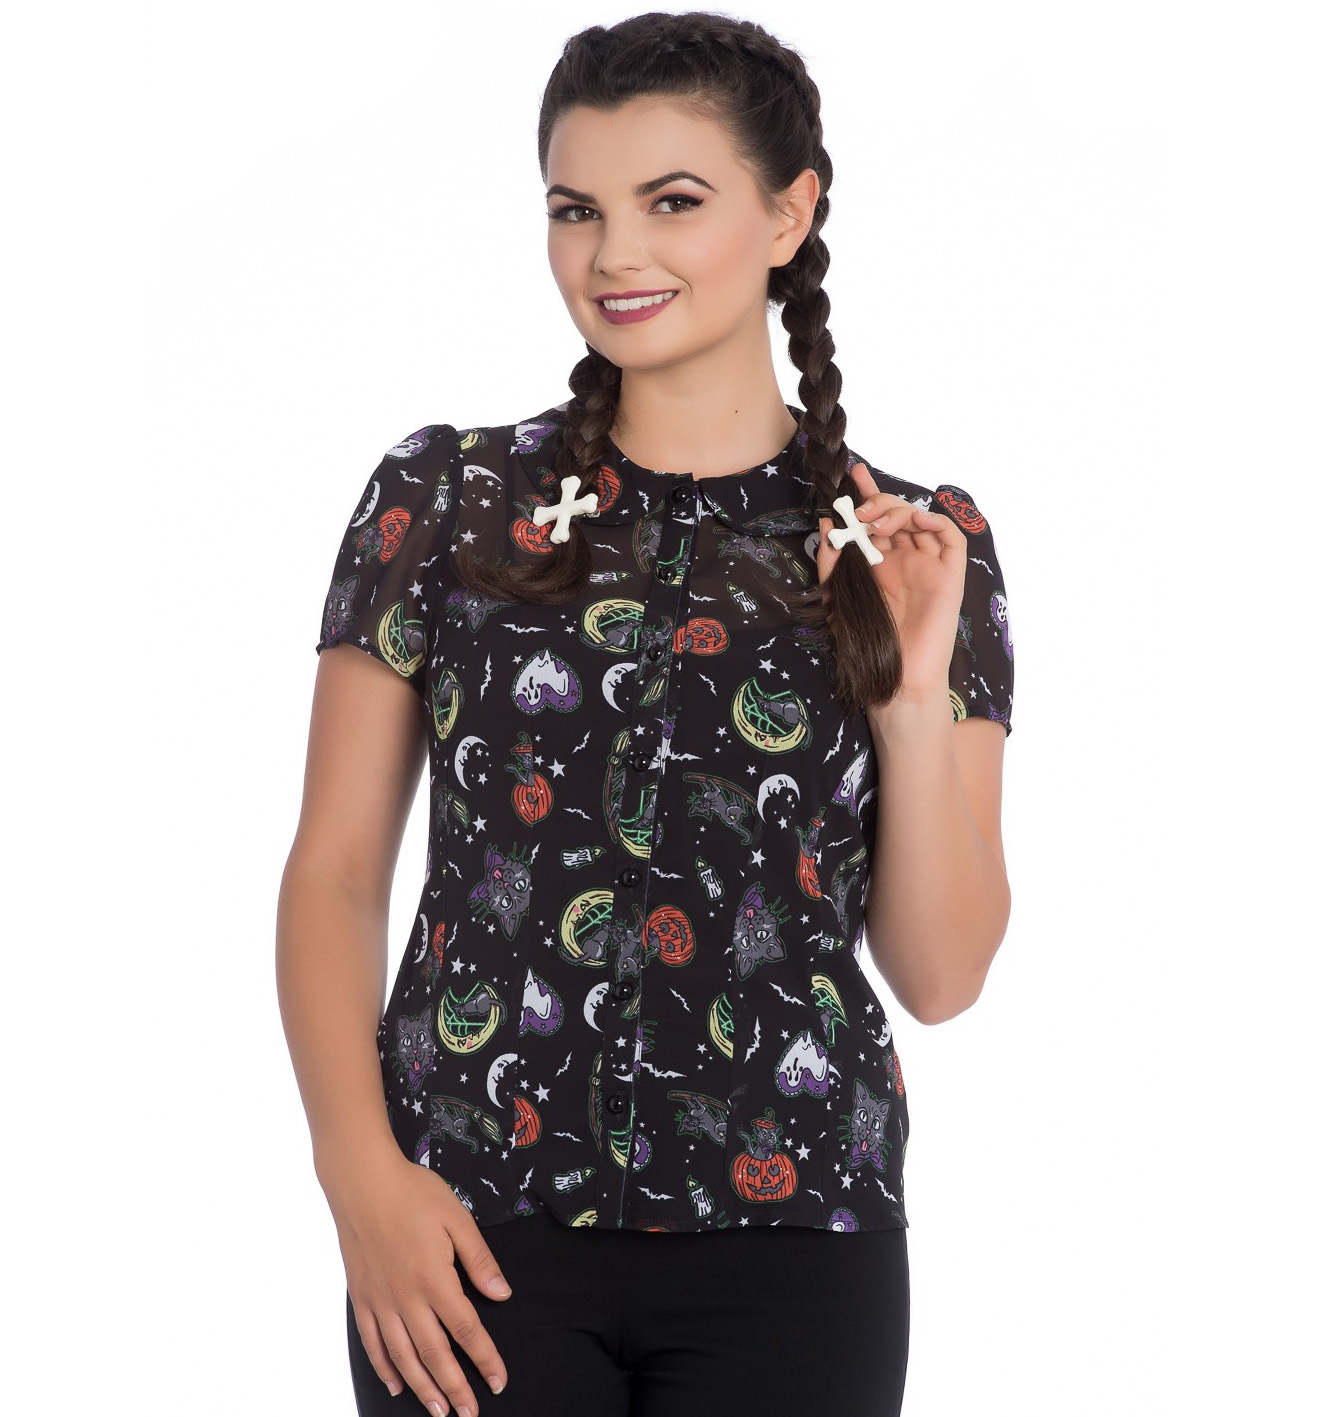 Hell-Bunny-Shirt-Top-Black-Halloween-Gothic-SALEM-Blouse-Bats-Ghosts-All-Sizes thumbnail 3